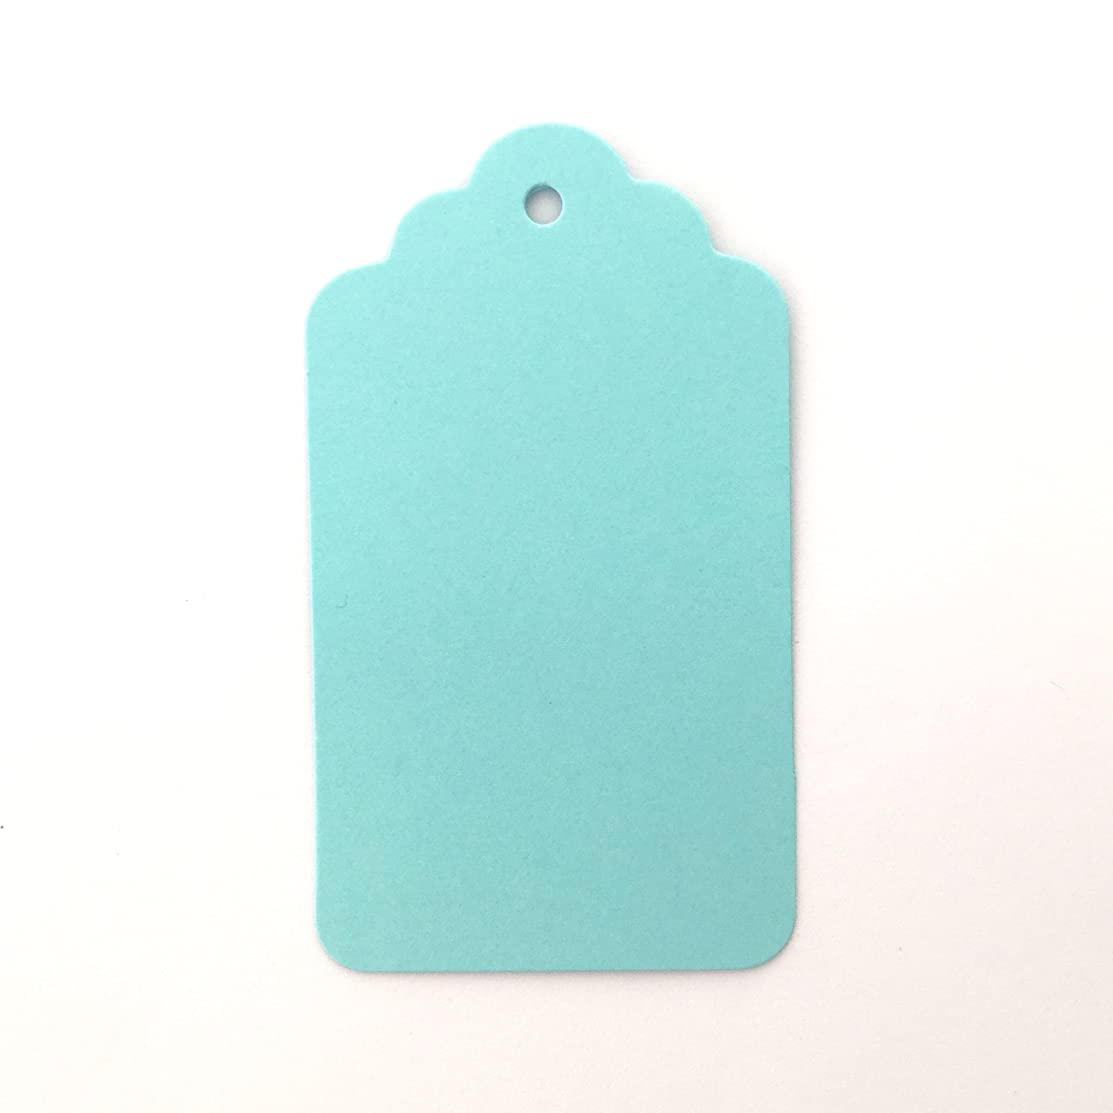 LWR Crafts 100 Hang Tags Scalloped Top Rectangle with Jute Twines 100ft (2 3/4